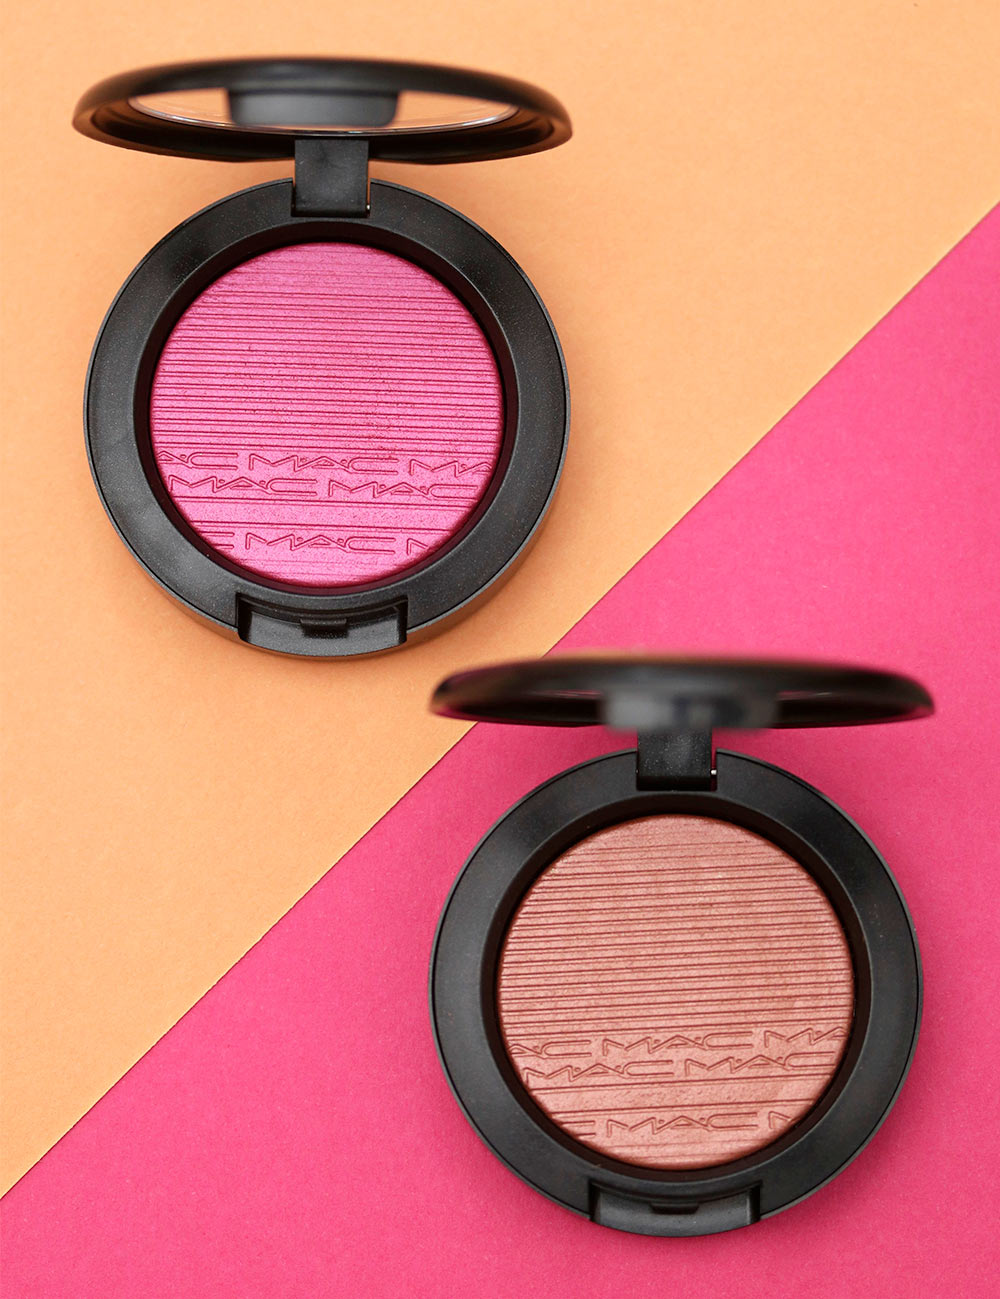 mac extra dimension blush rosy cheeks husehd tone